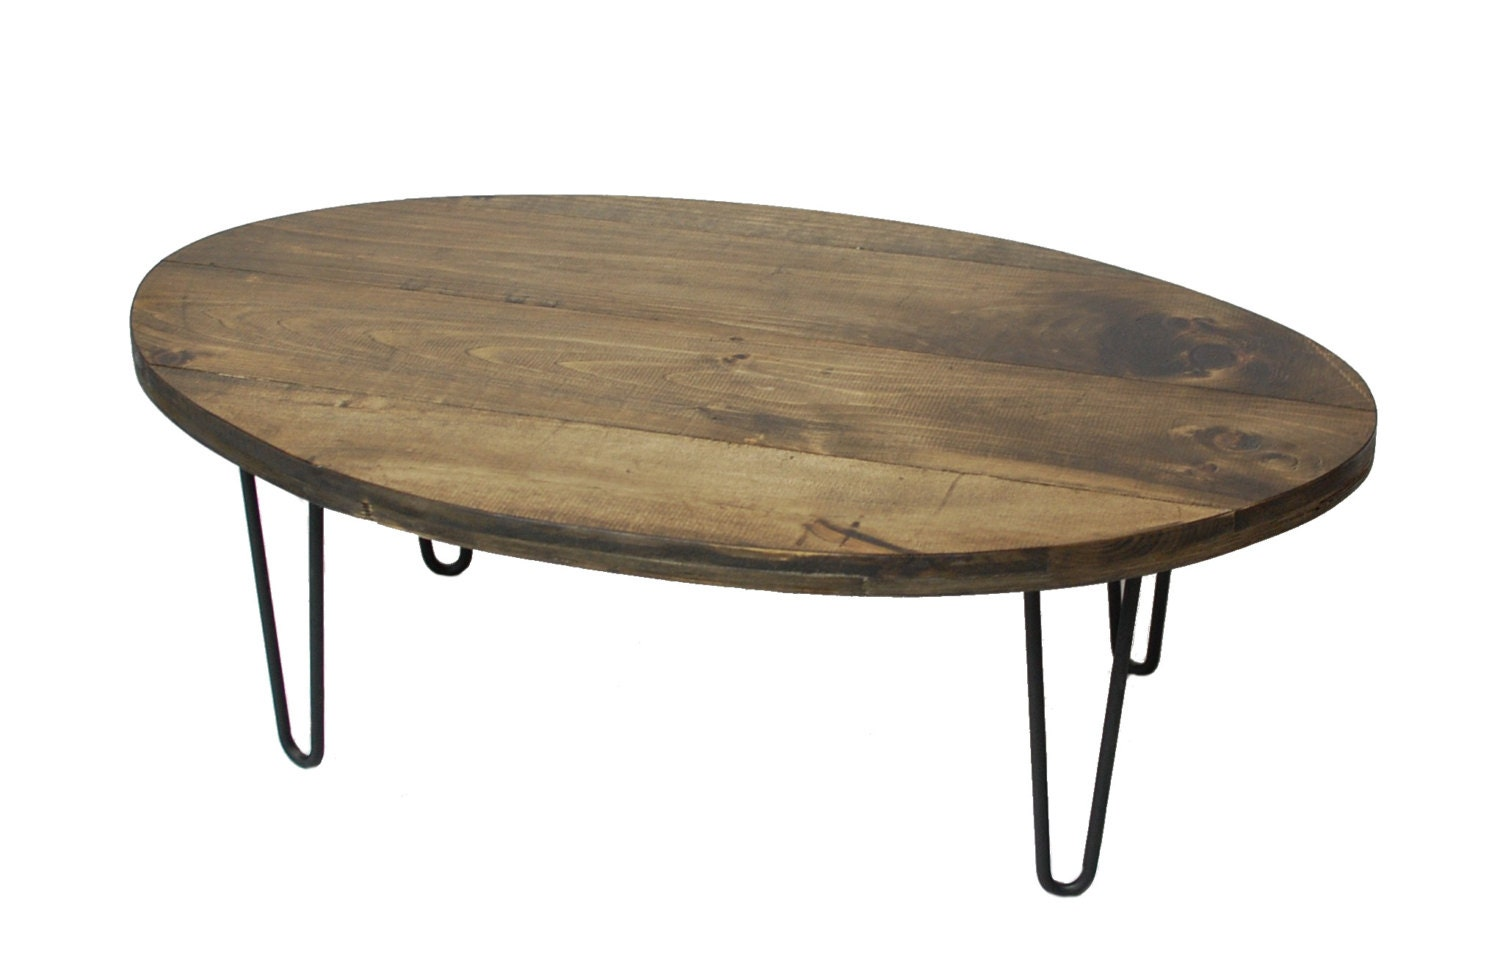 Oval Industrial Coffee Table Reclaimed Wood Furniture Round Etsy